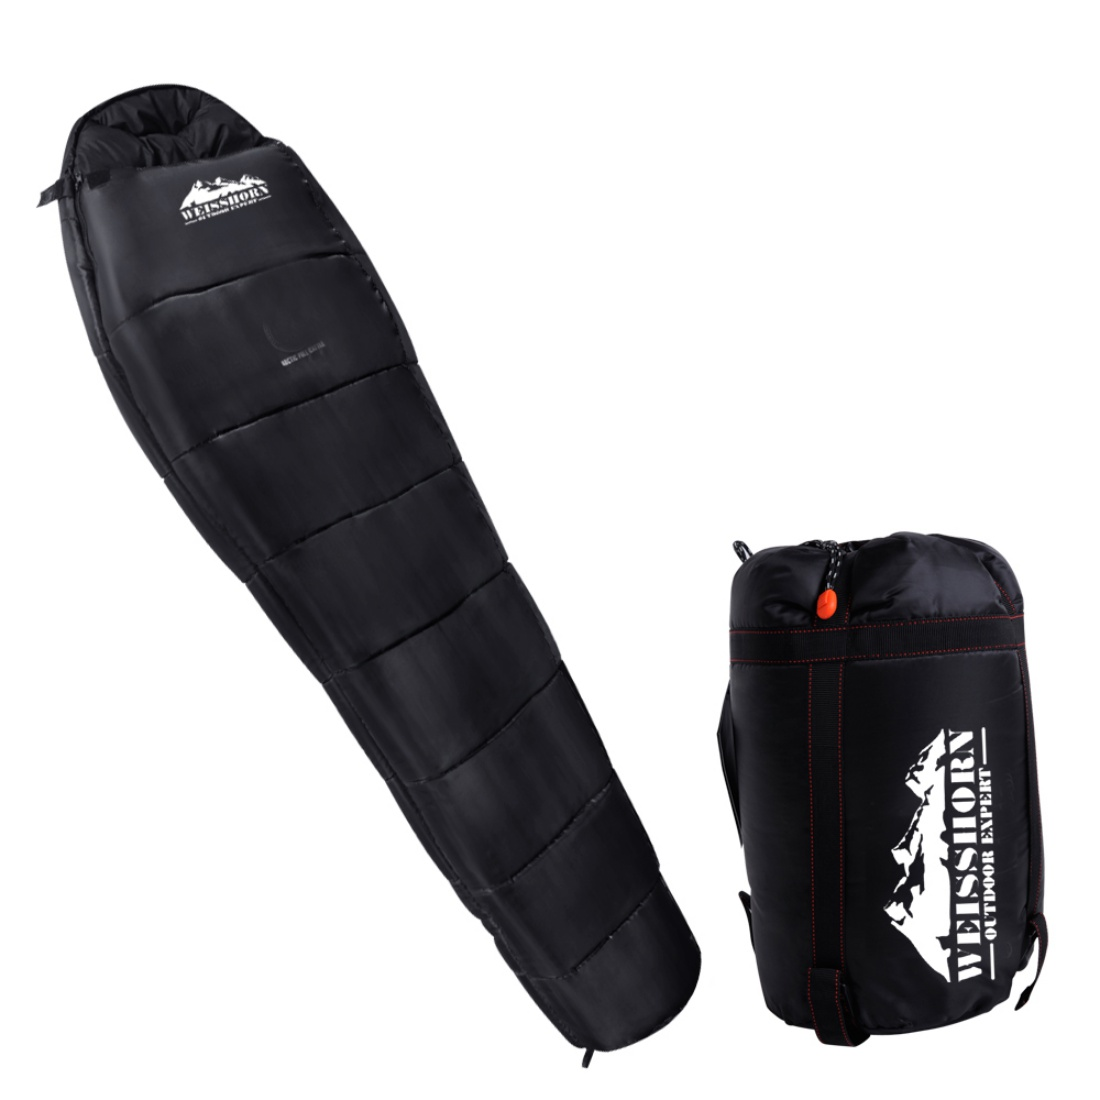 Camping Thermal Sleeping Bag Black